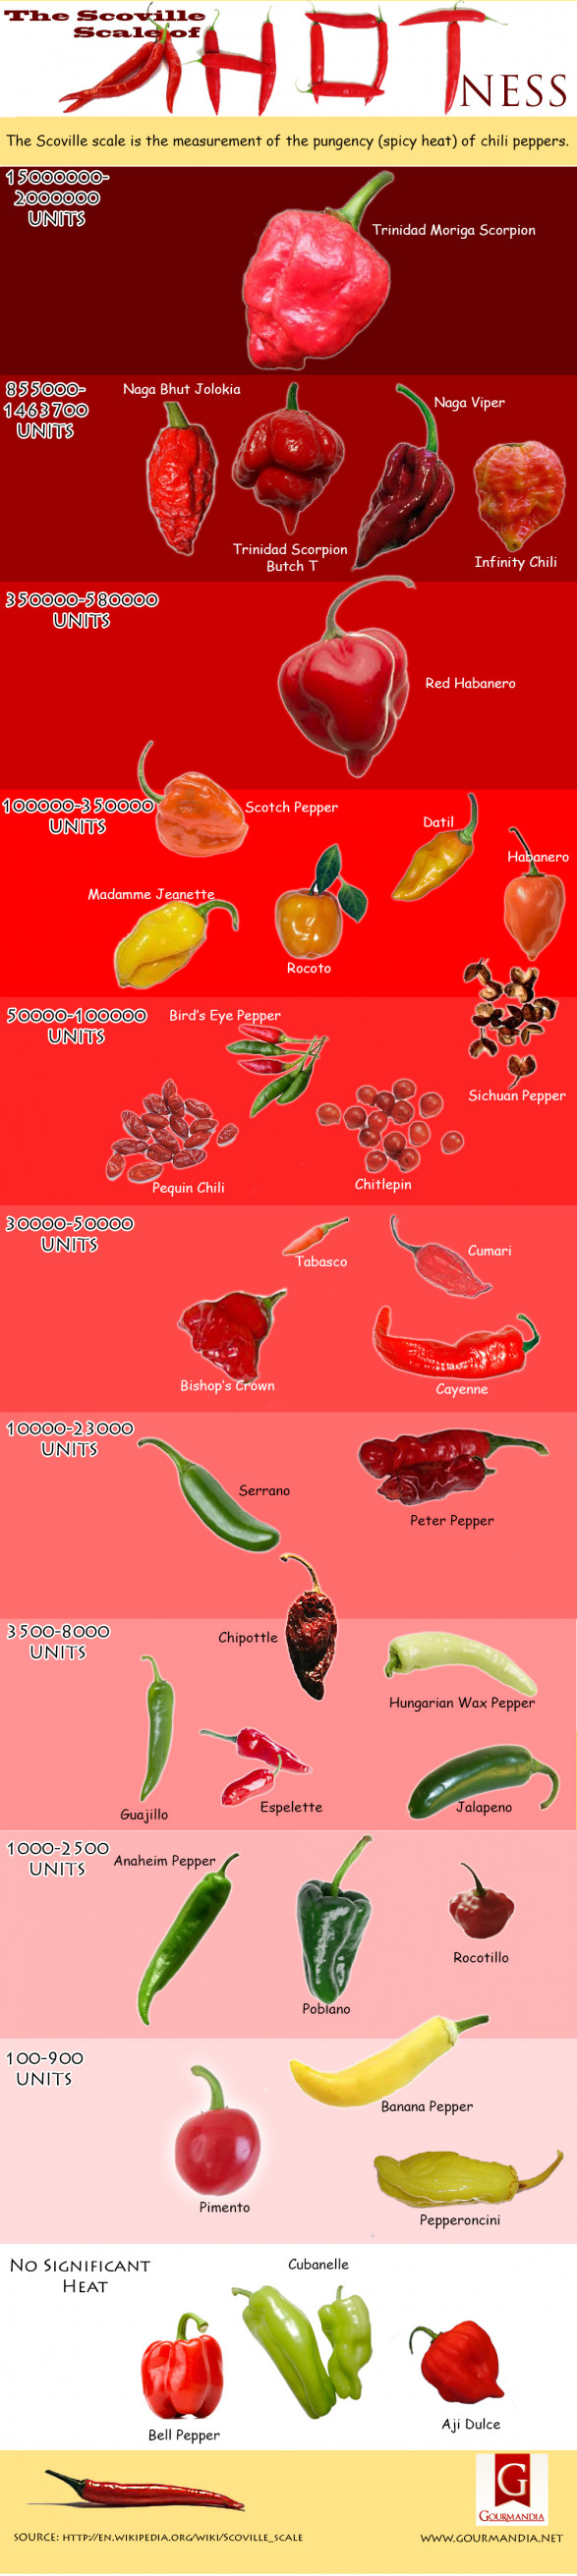 The Scoville Scale of Hotness